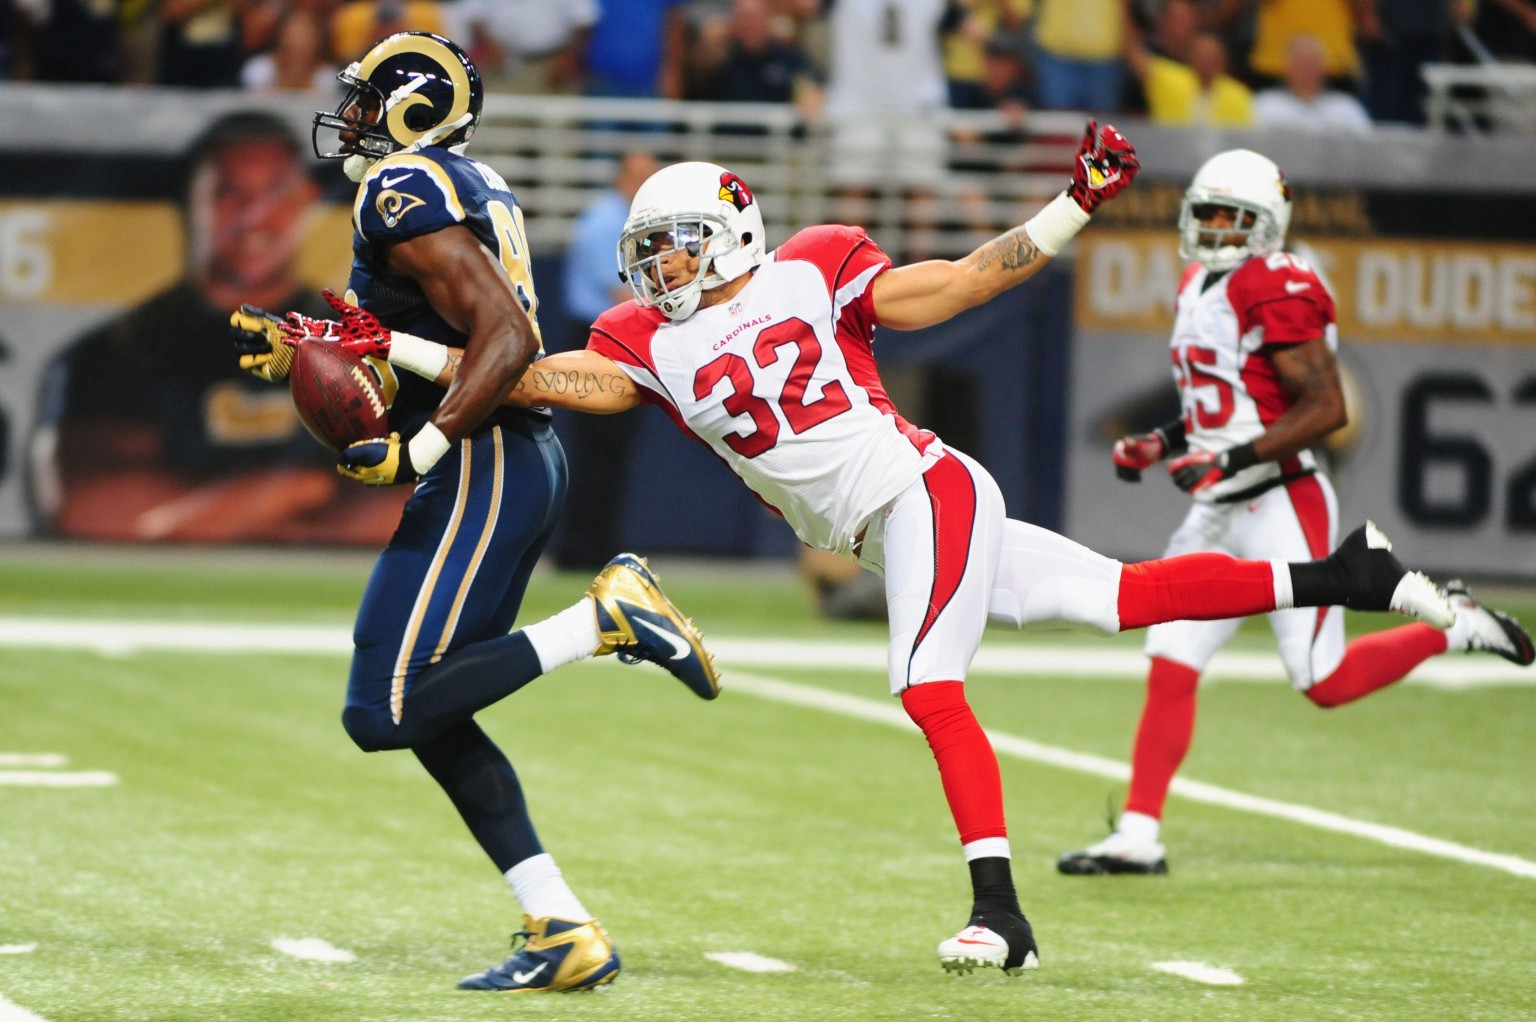 1affbbdaf56 Kansas City Chiefs newly acquired safety Tyrann Mathieu can he be the plug  to this porous defense? image courtesy huffingtonpost.com. Last year in free  ...